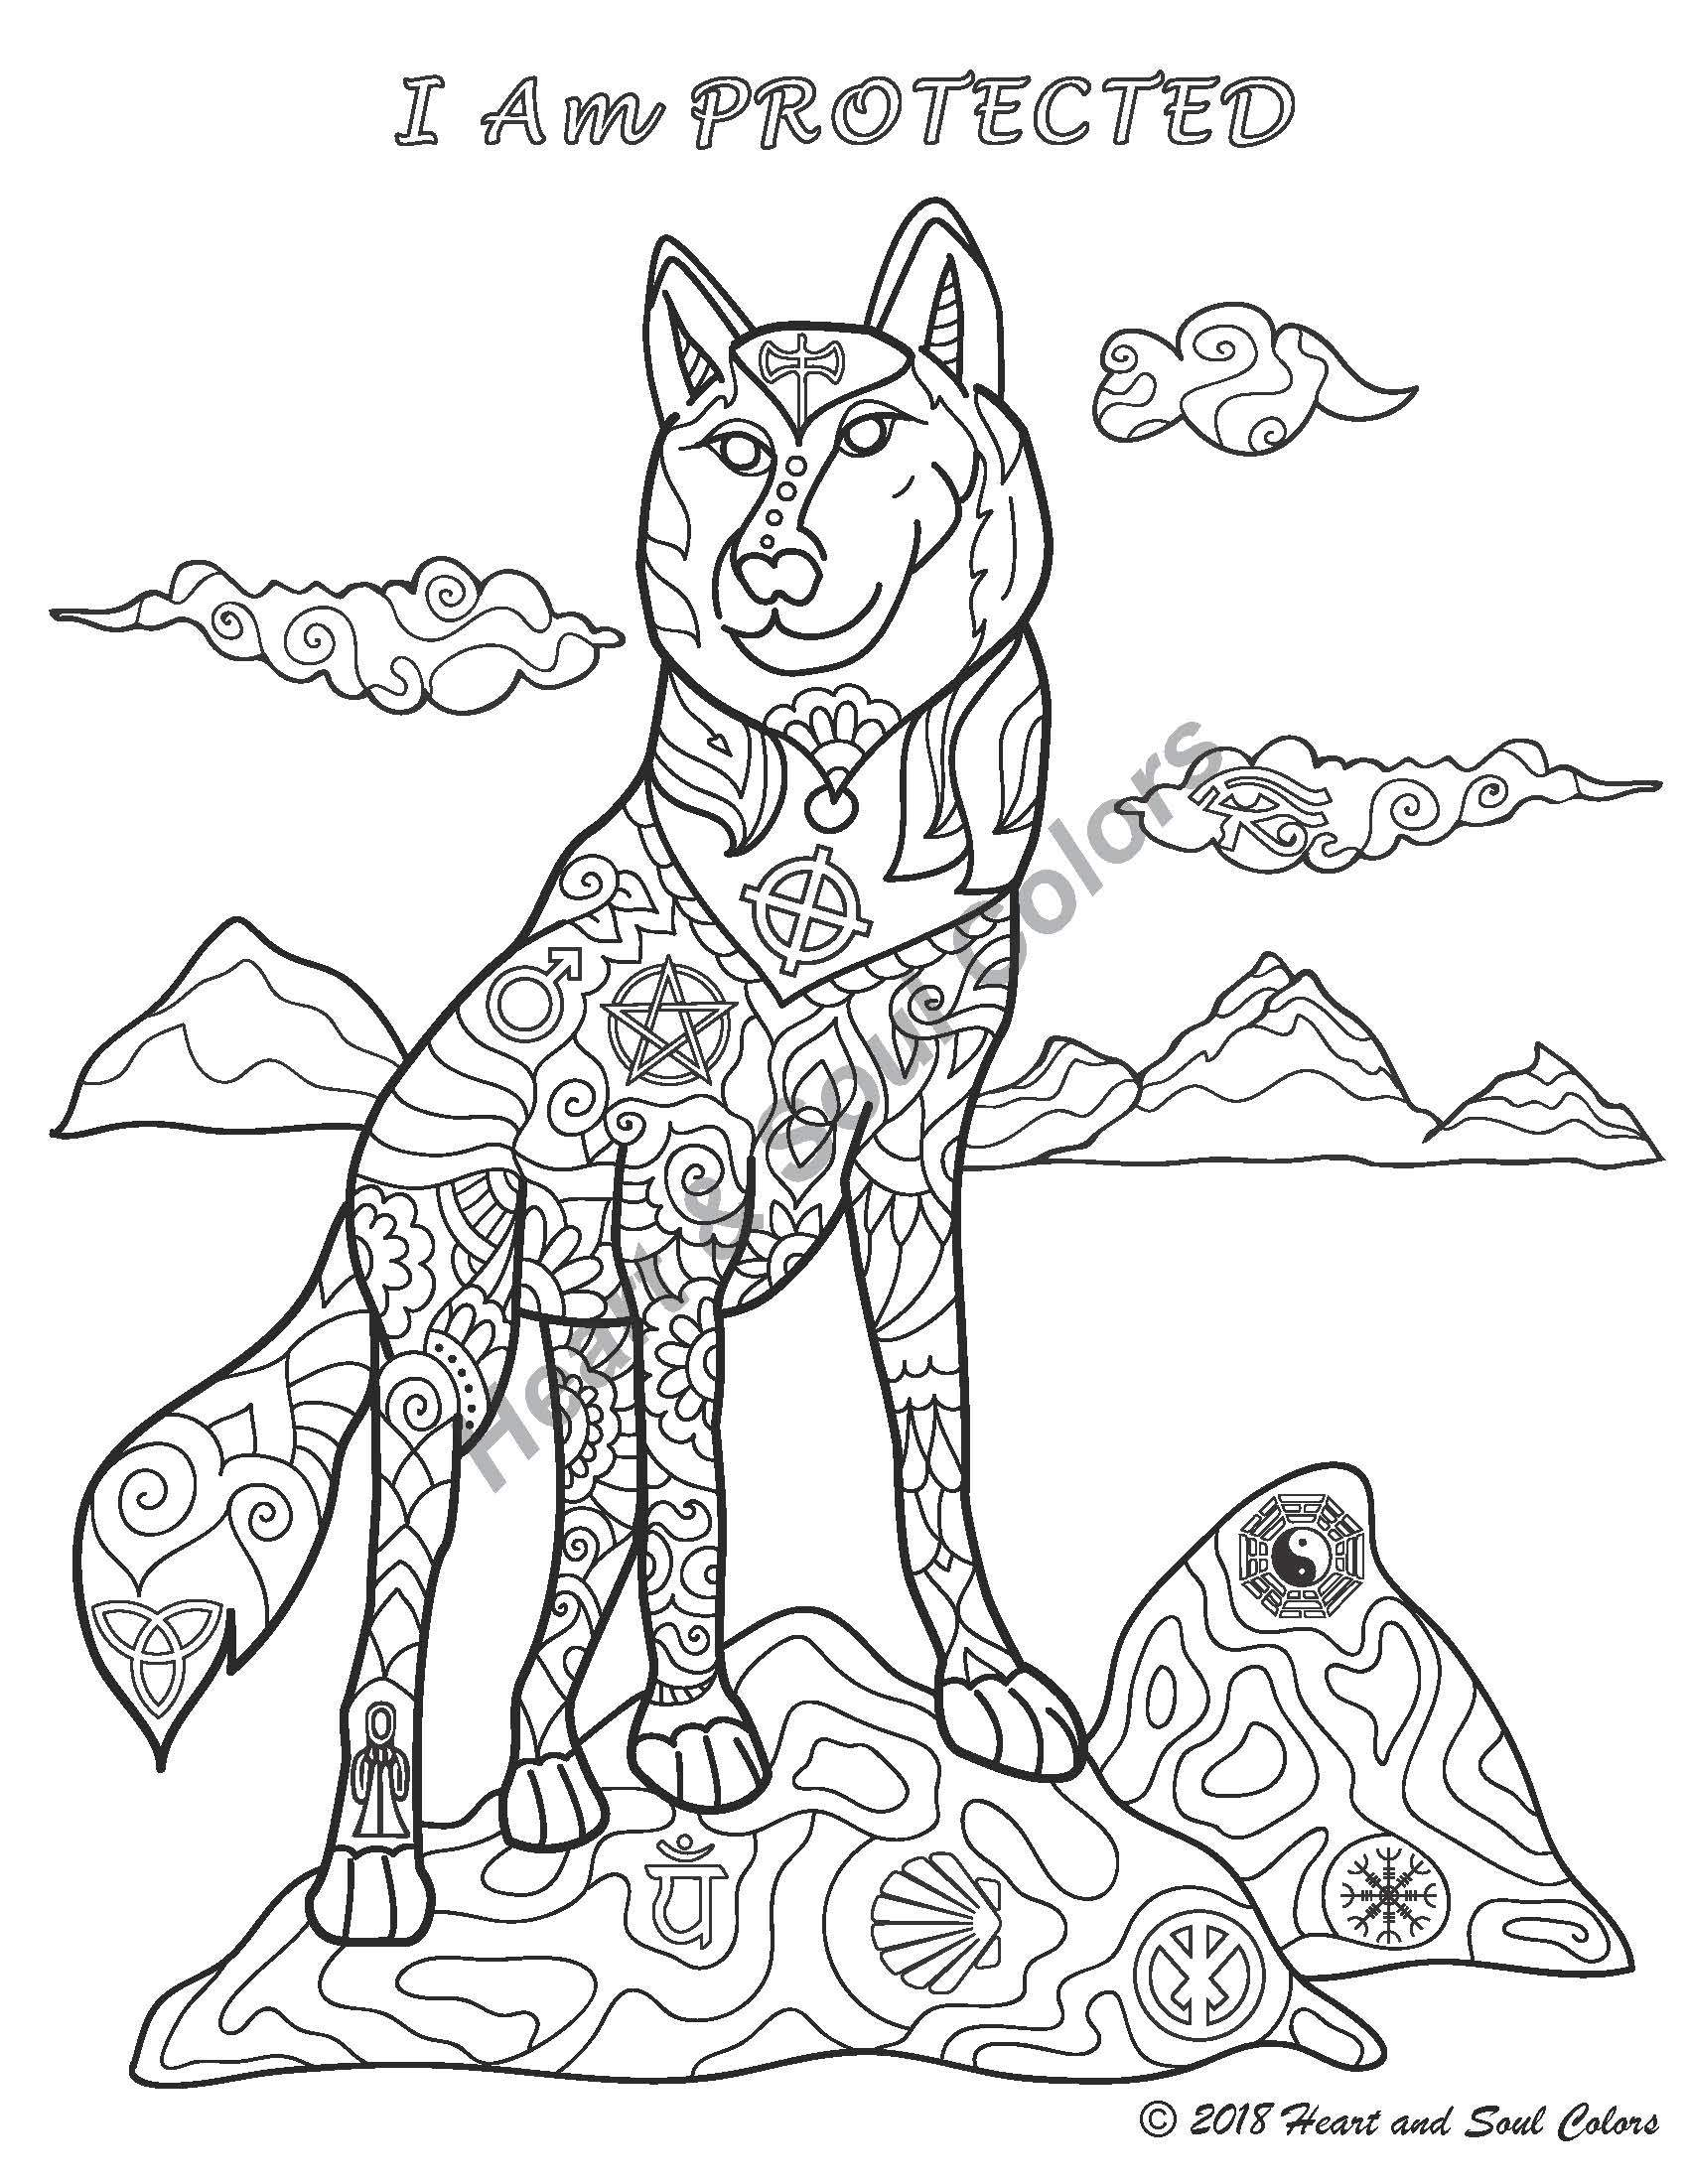 I Am PROTECTED Wolf coloring design for knowing that you are always safe embraced by Spirit and the universe. This special design includes sacred geometry and many other powerful, hidden symbols.